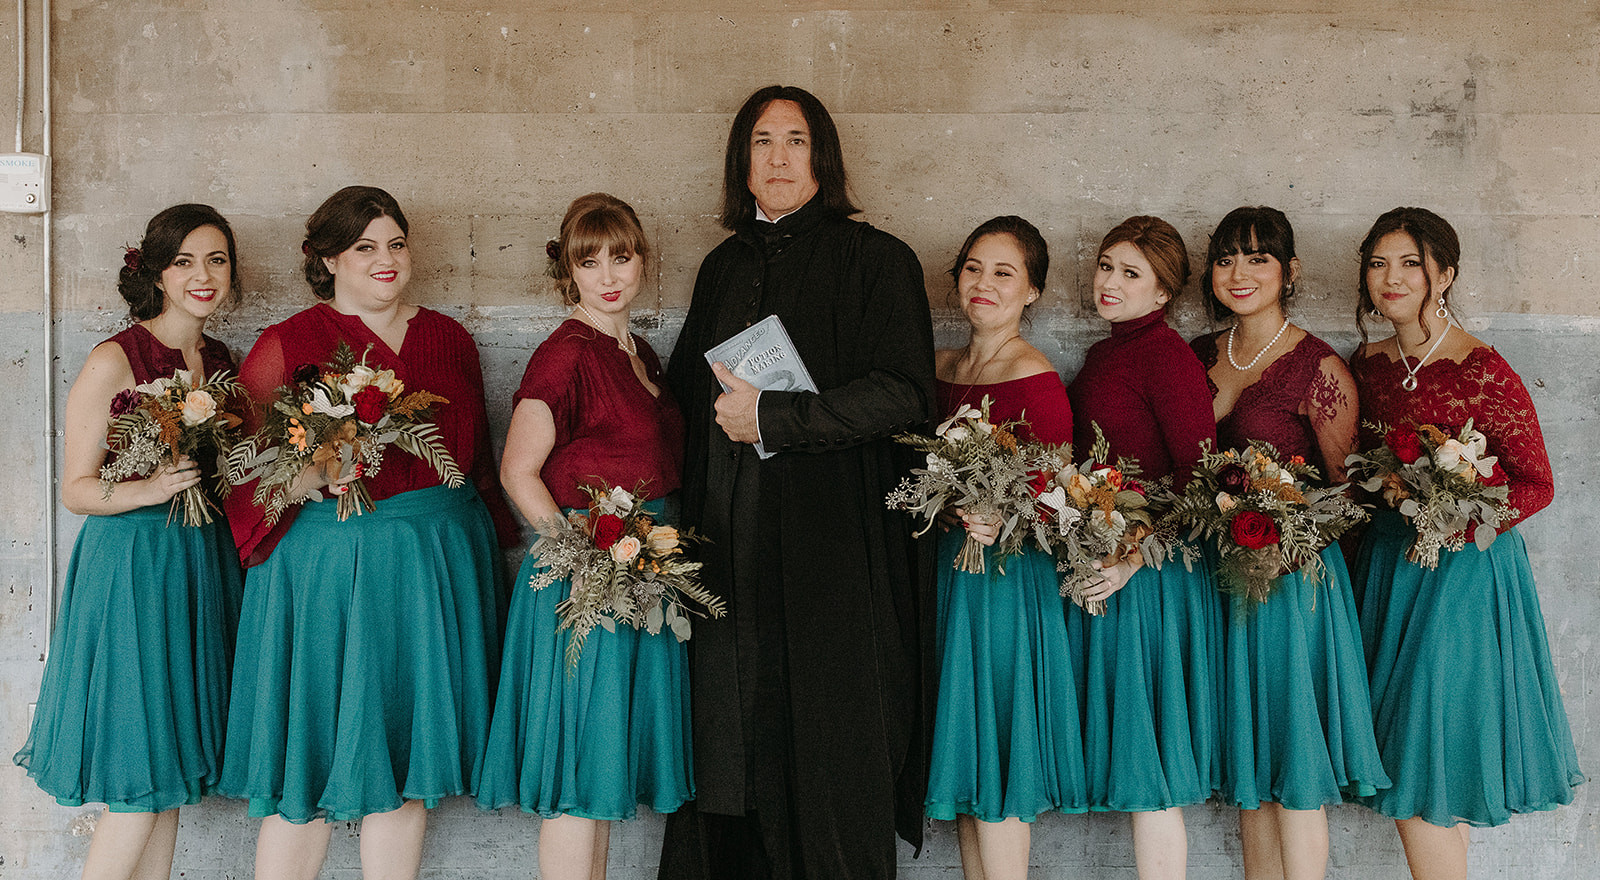 harry potter dallas wedding planning by serendipity events by tina